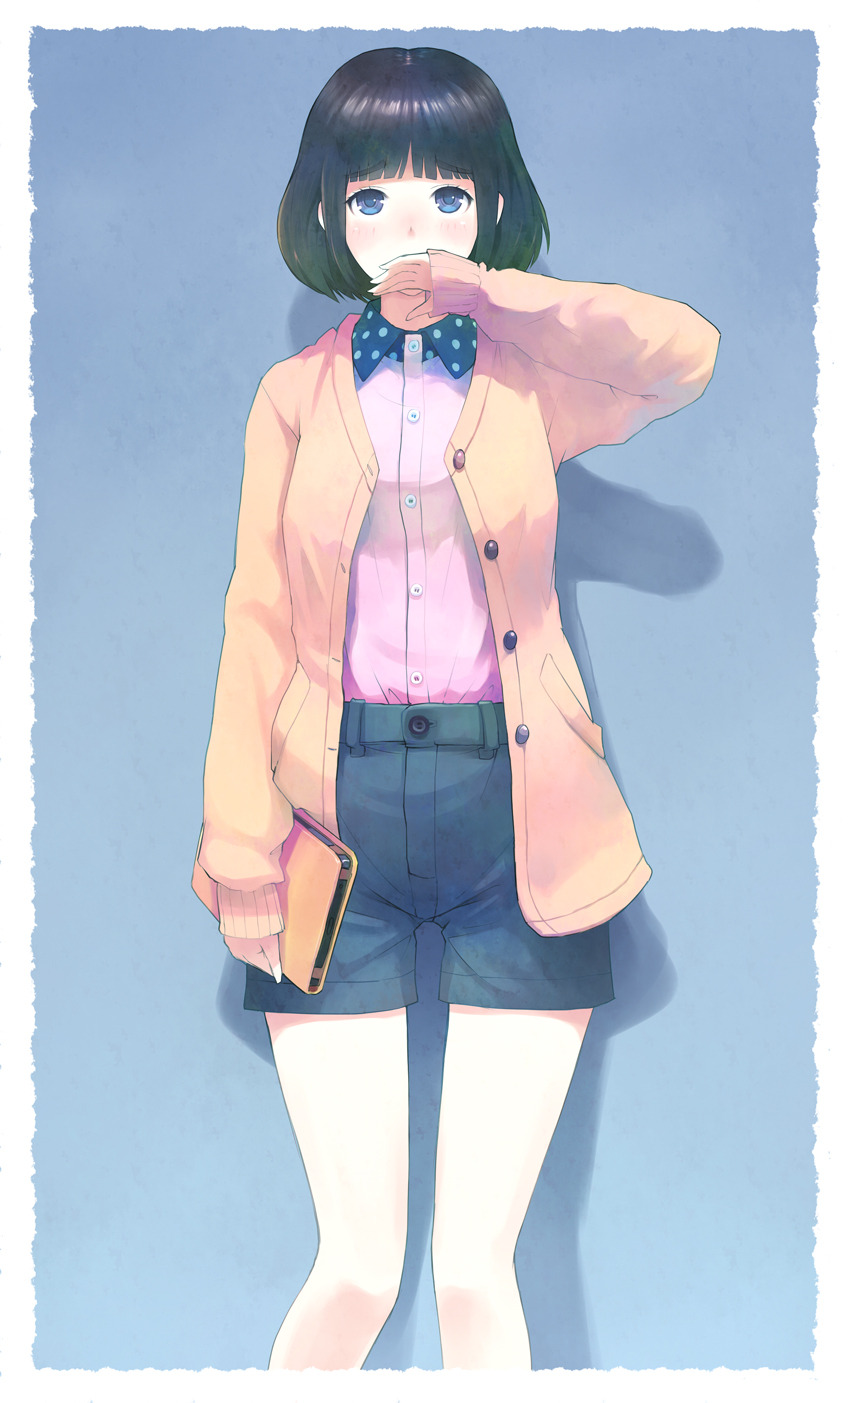 1girl black hair blue eyes cardigan covering mouth efmoe open cardigan original short hair shorts solo | Sankaku Channel